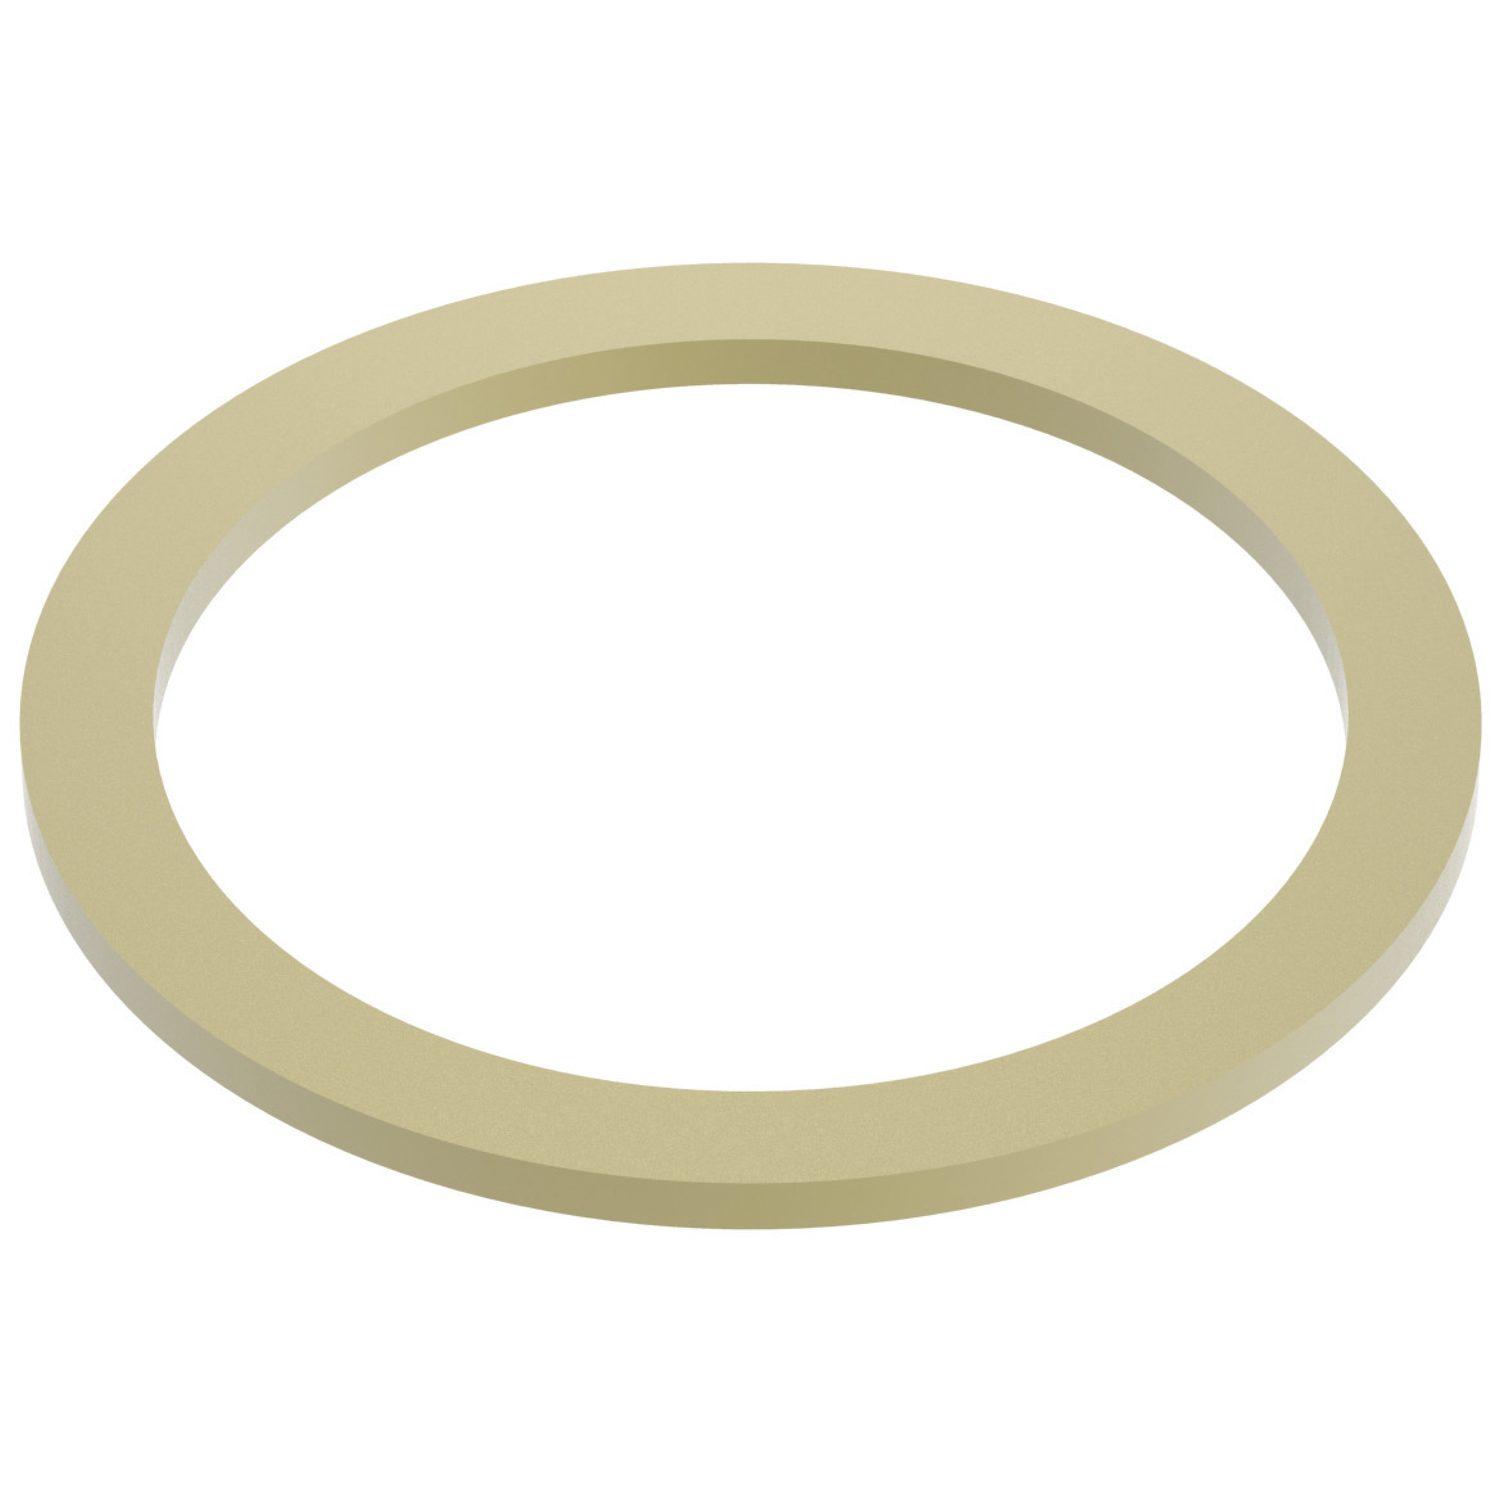 P0344.BR - Laminated Shim Spacers